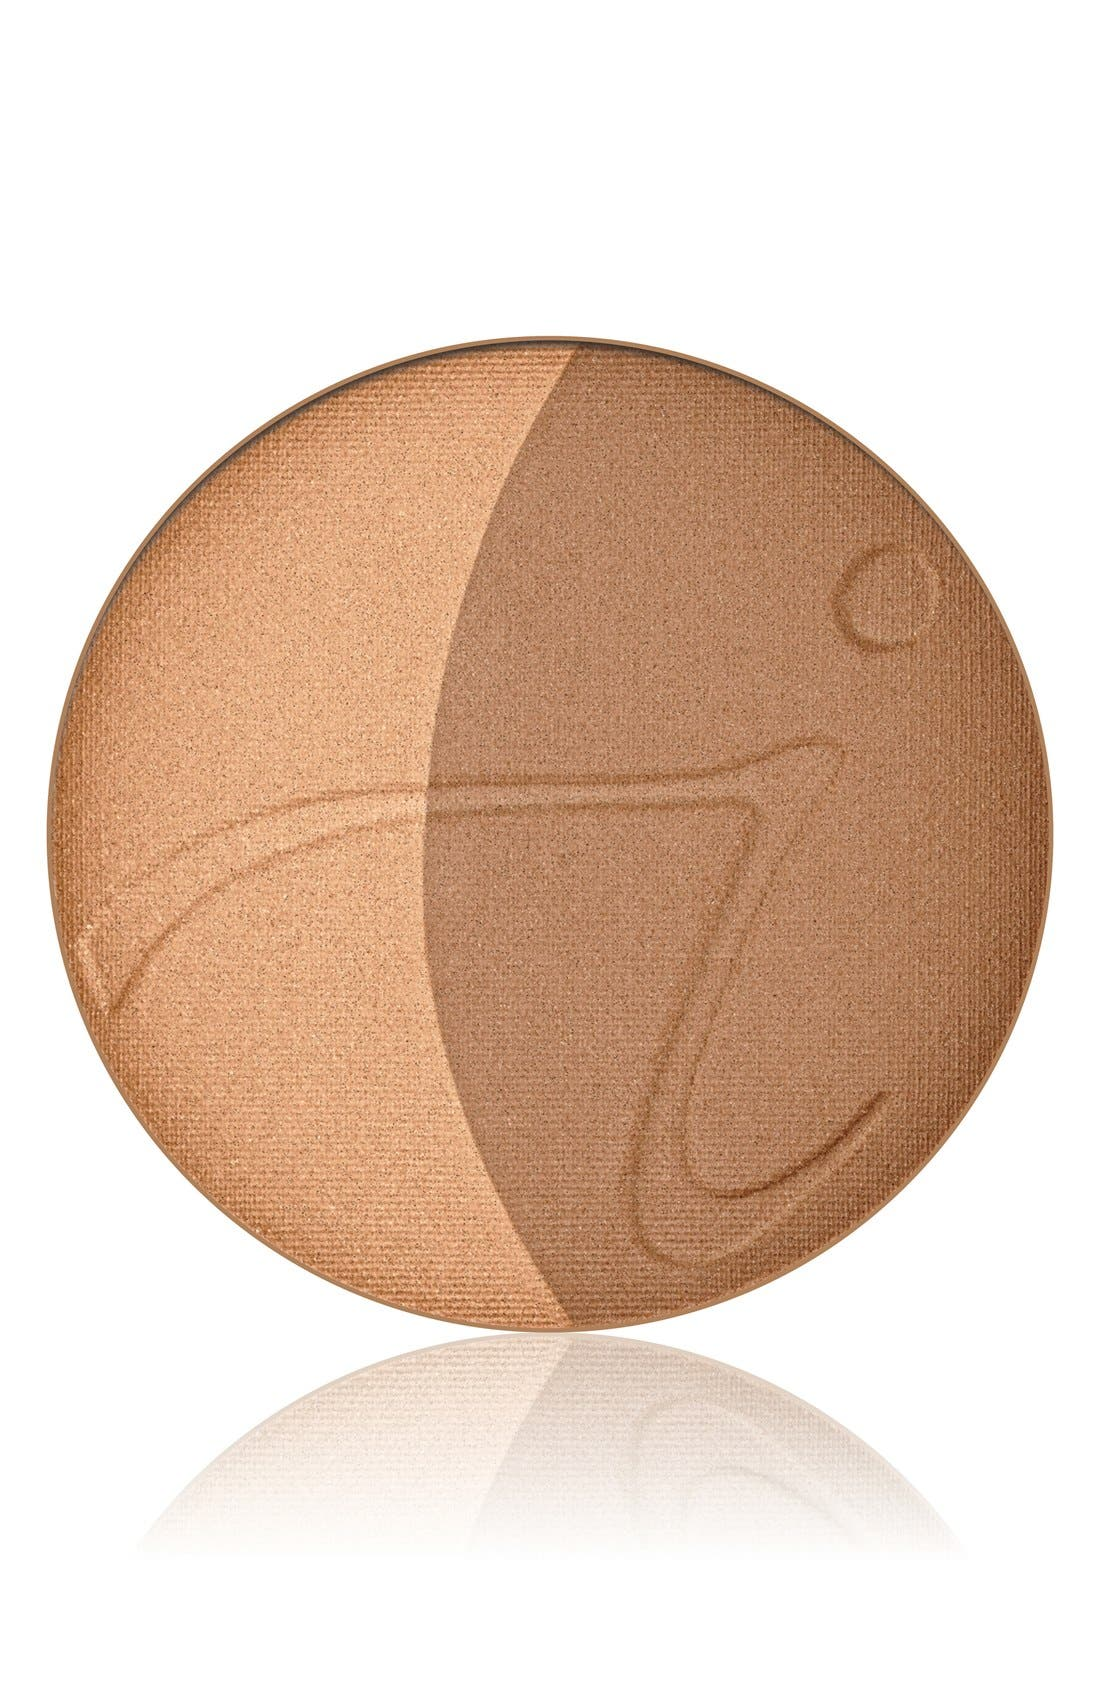 JANE IREDALE So-Bronze<sup>®</sup> 2 Bronzing Powder Refill, Main, color, NO COLOR